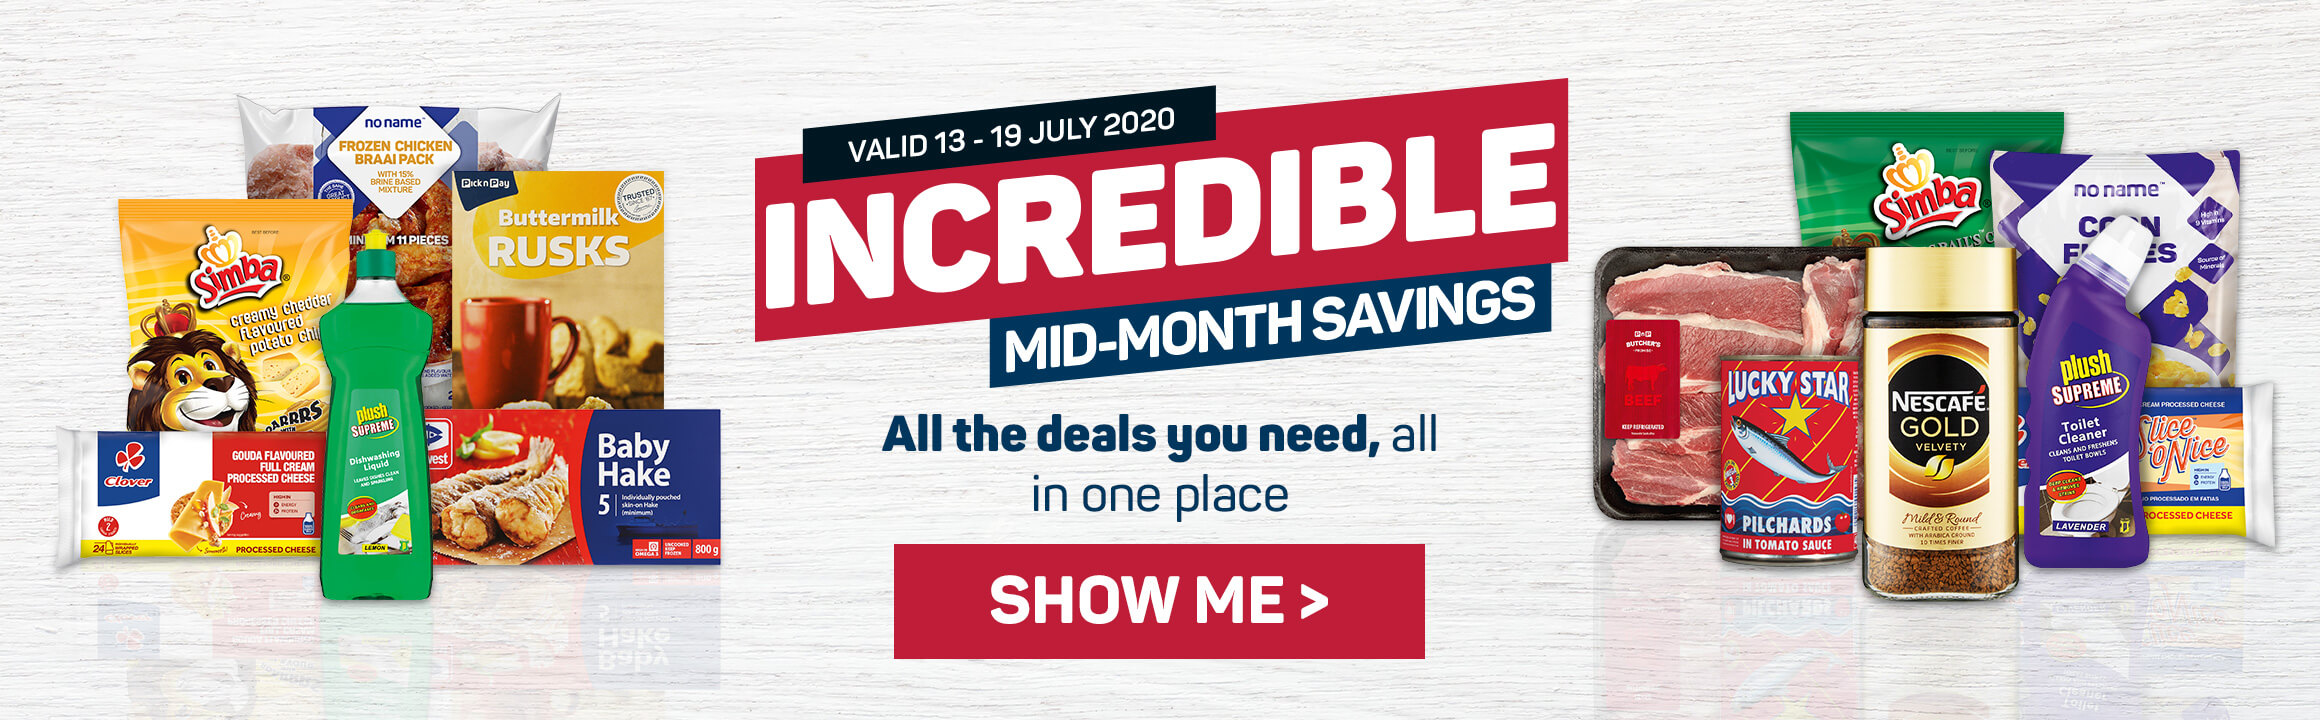 Incredible mid-month savings. Show me